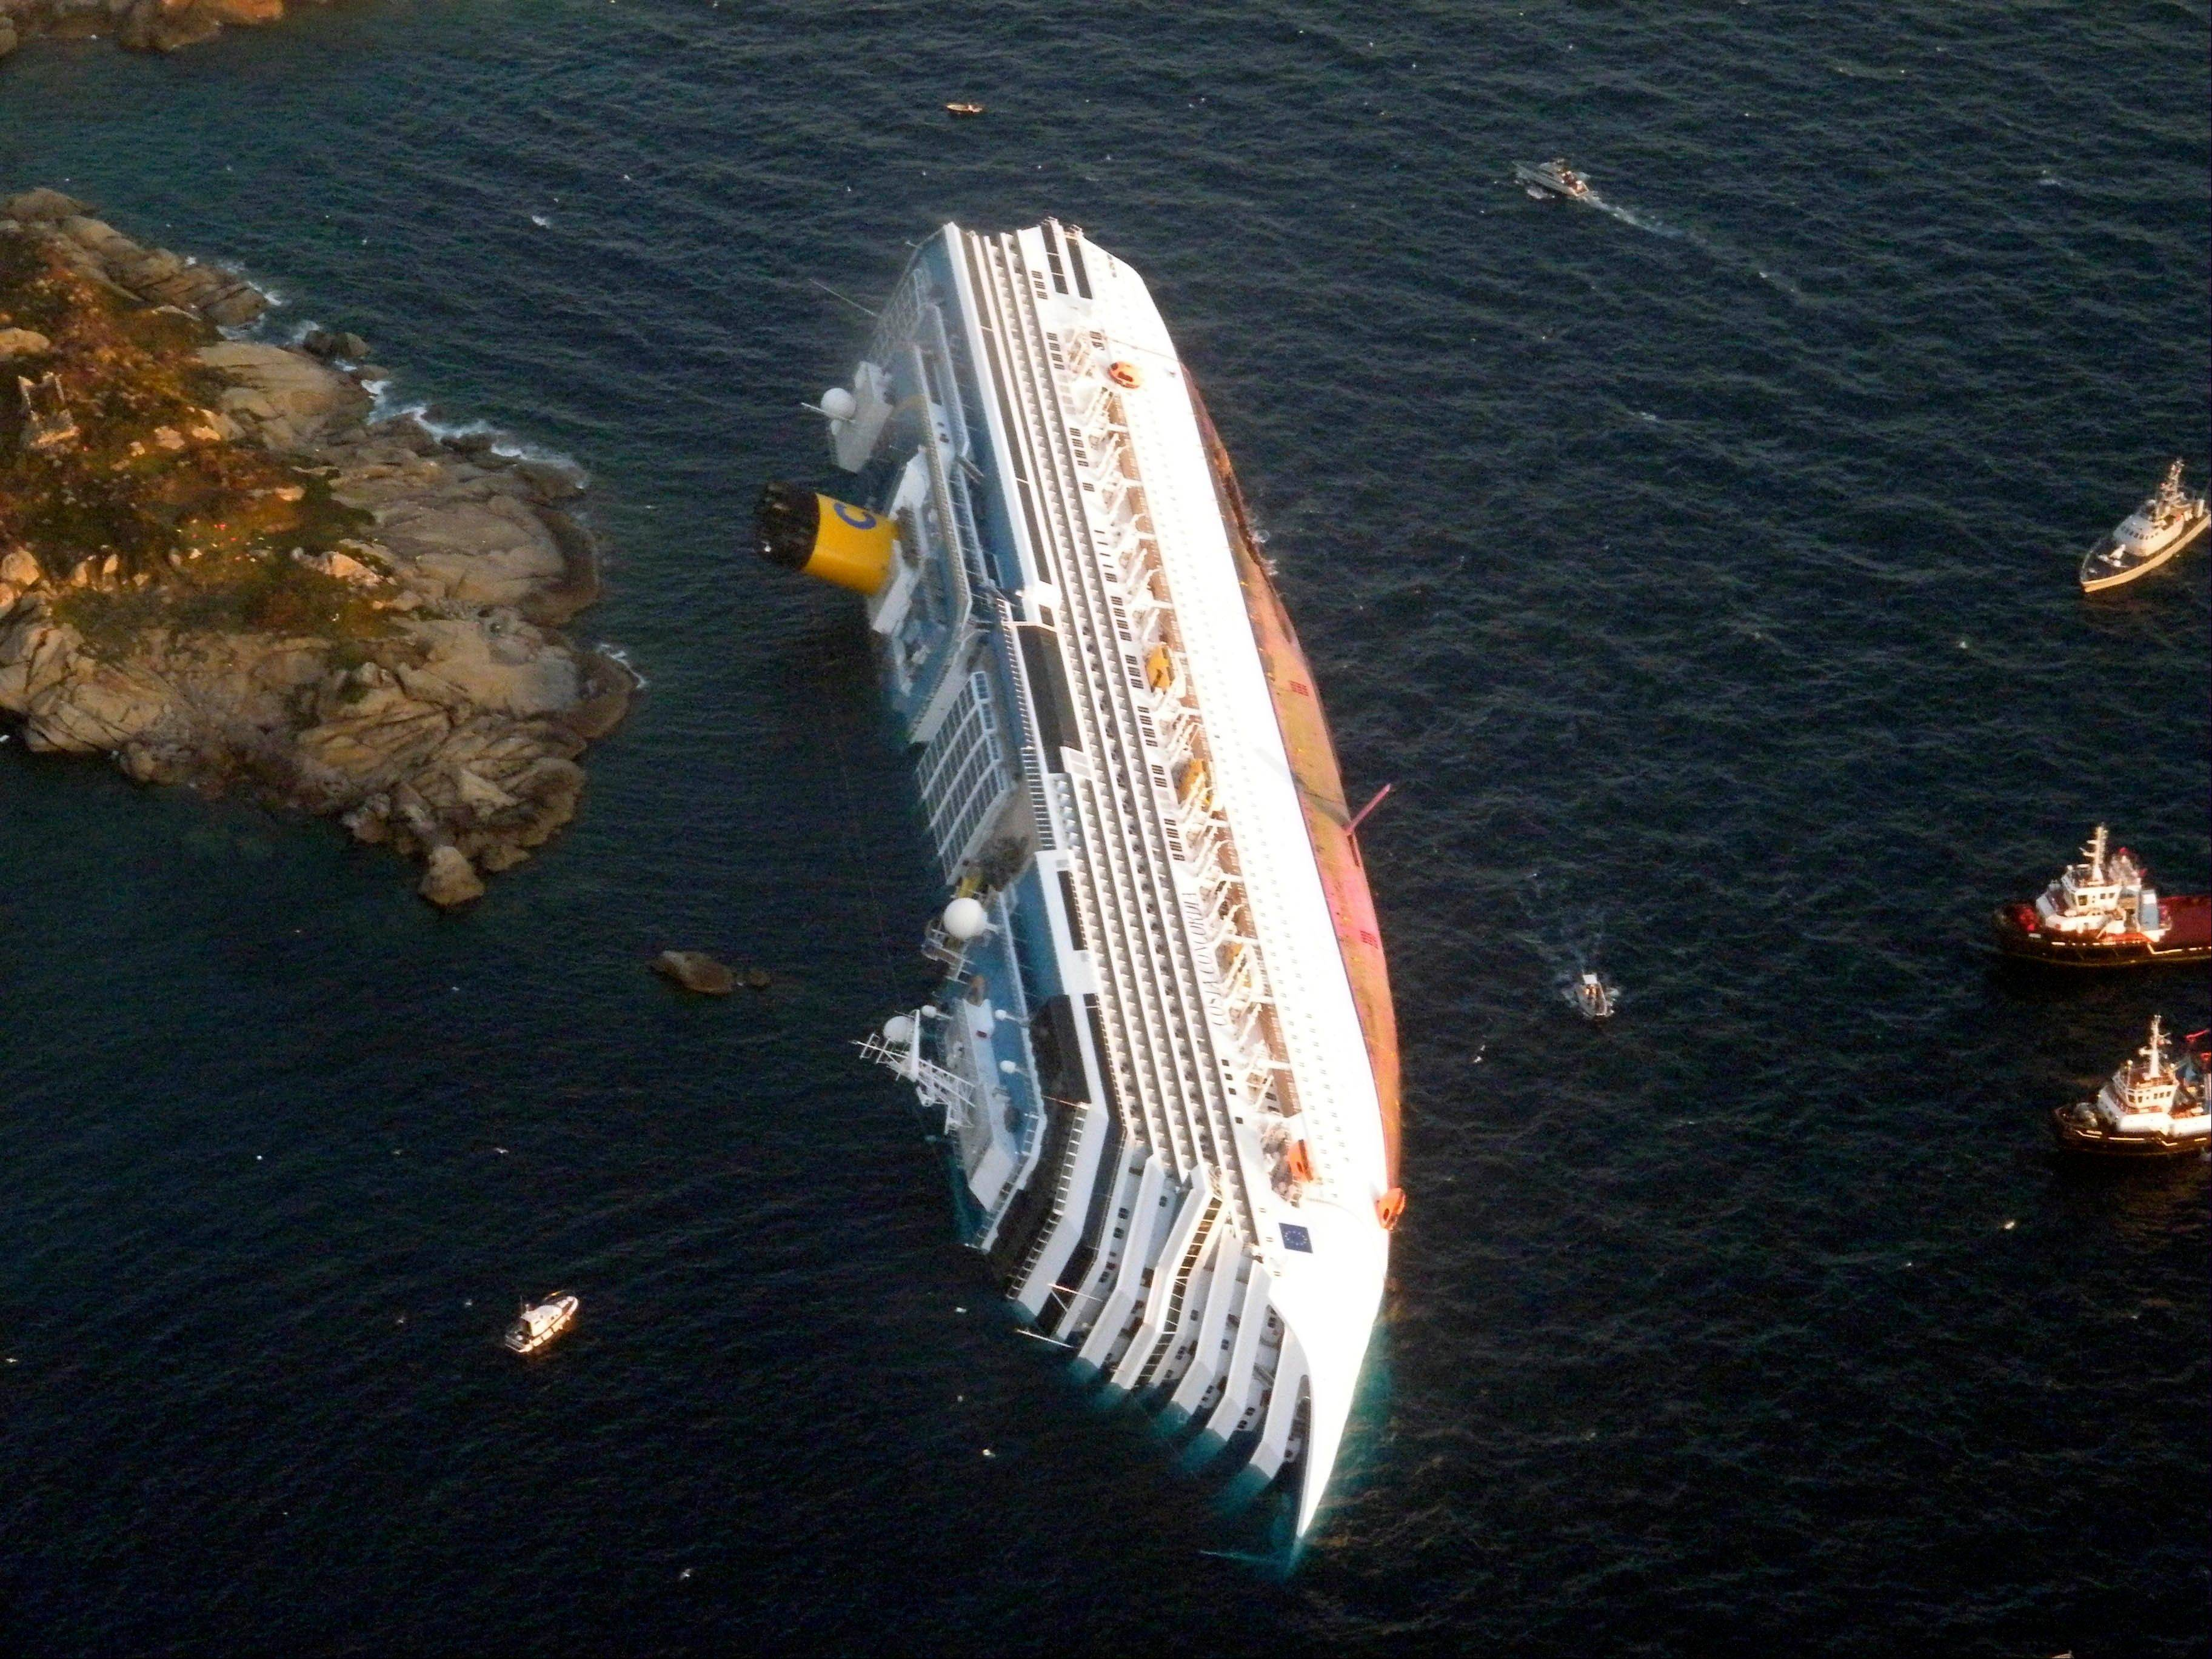 A judge in Tuscany fined Italian cruise line Costa Crociere SpA $1.3 million Wednesday, April 10, 2013 for the 2012 shipwreck that killed 32 people.